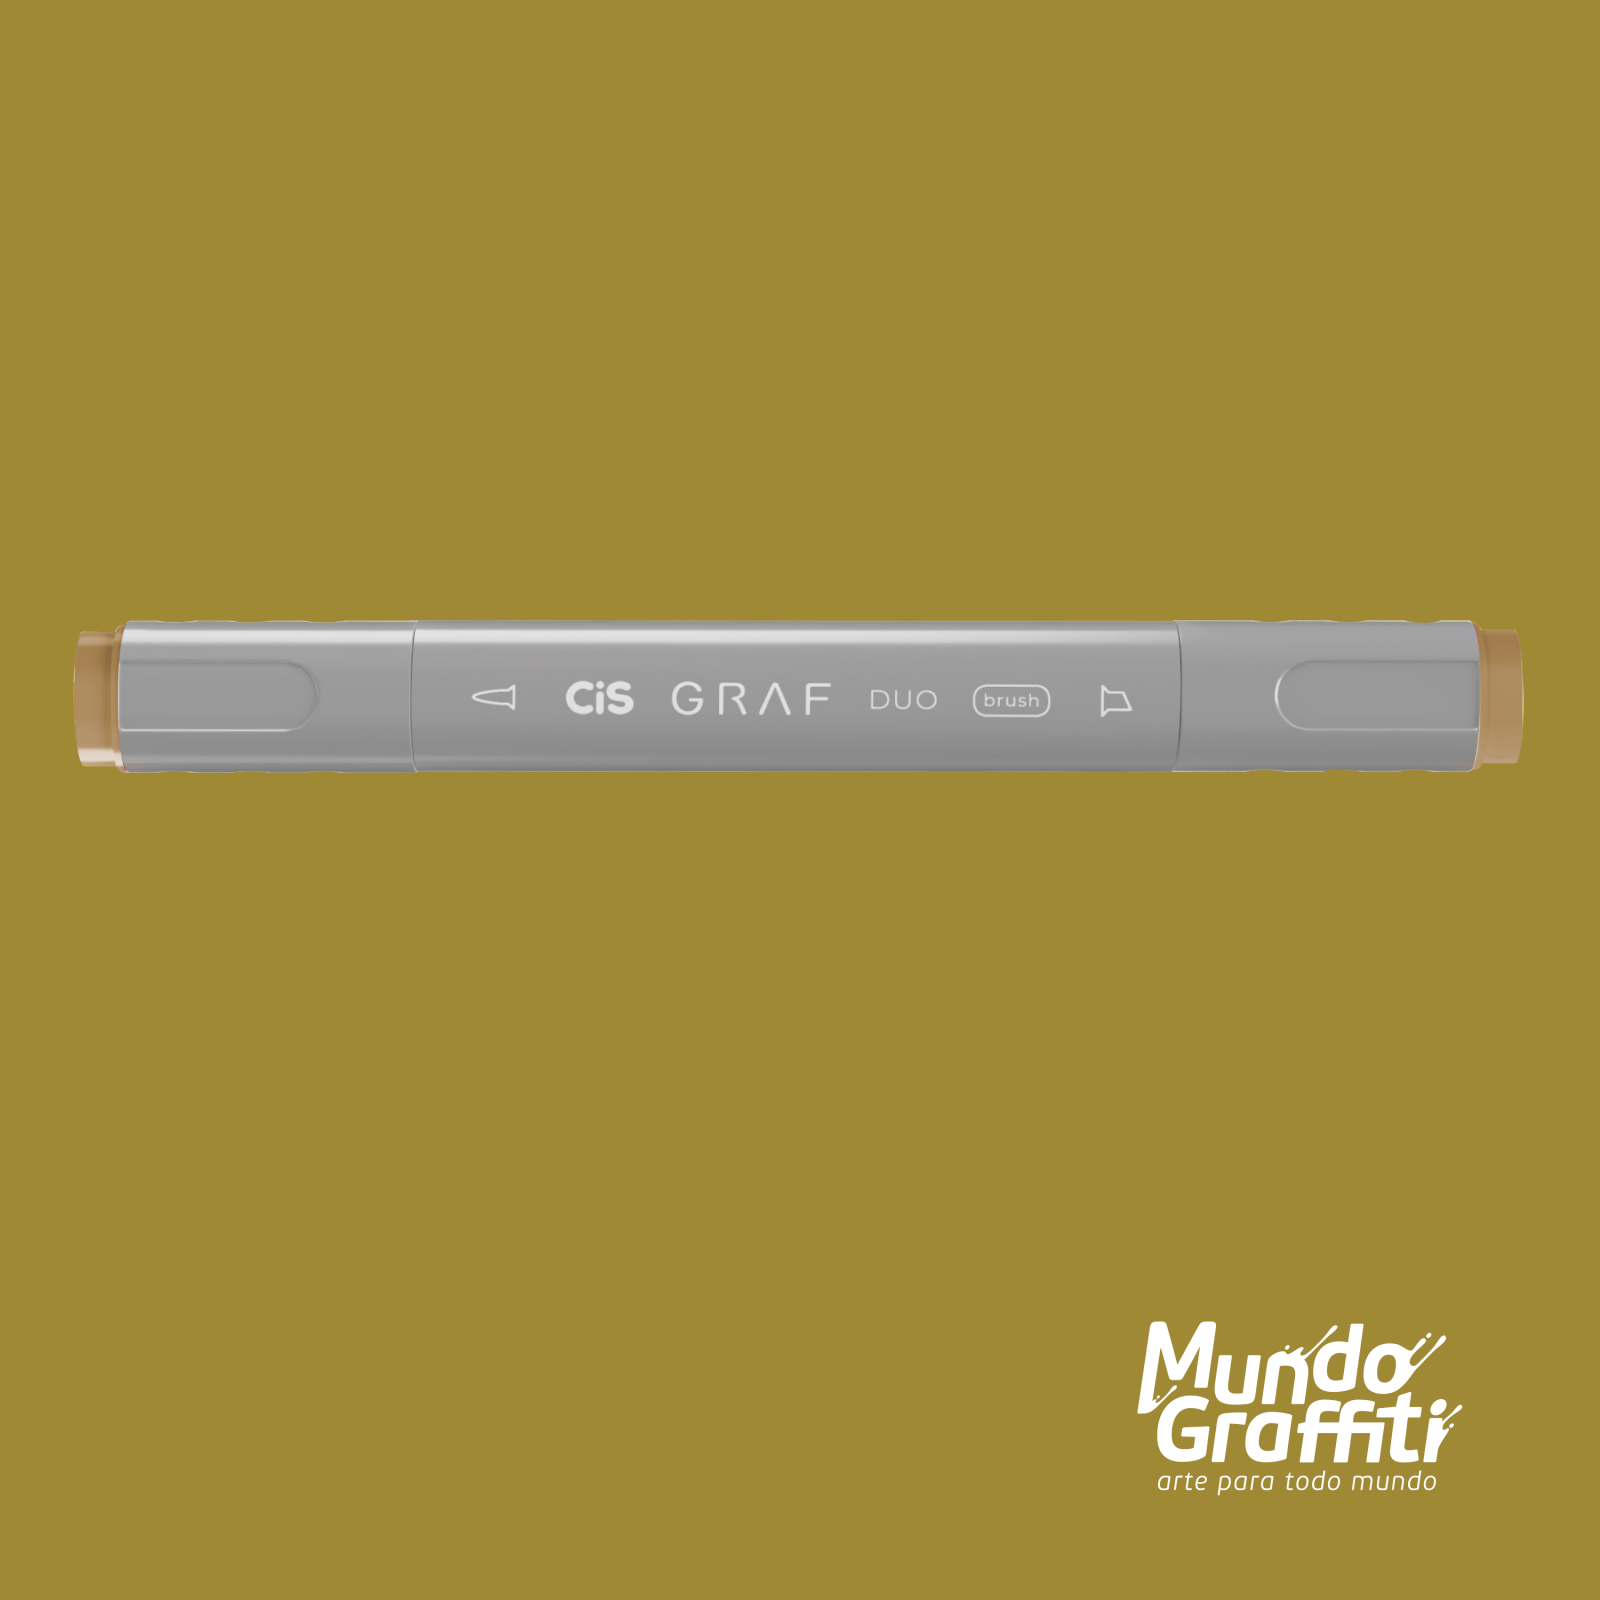 Marcador Cis Graf Duo Brush Olive Green 41 - Mundo Graffiti